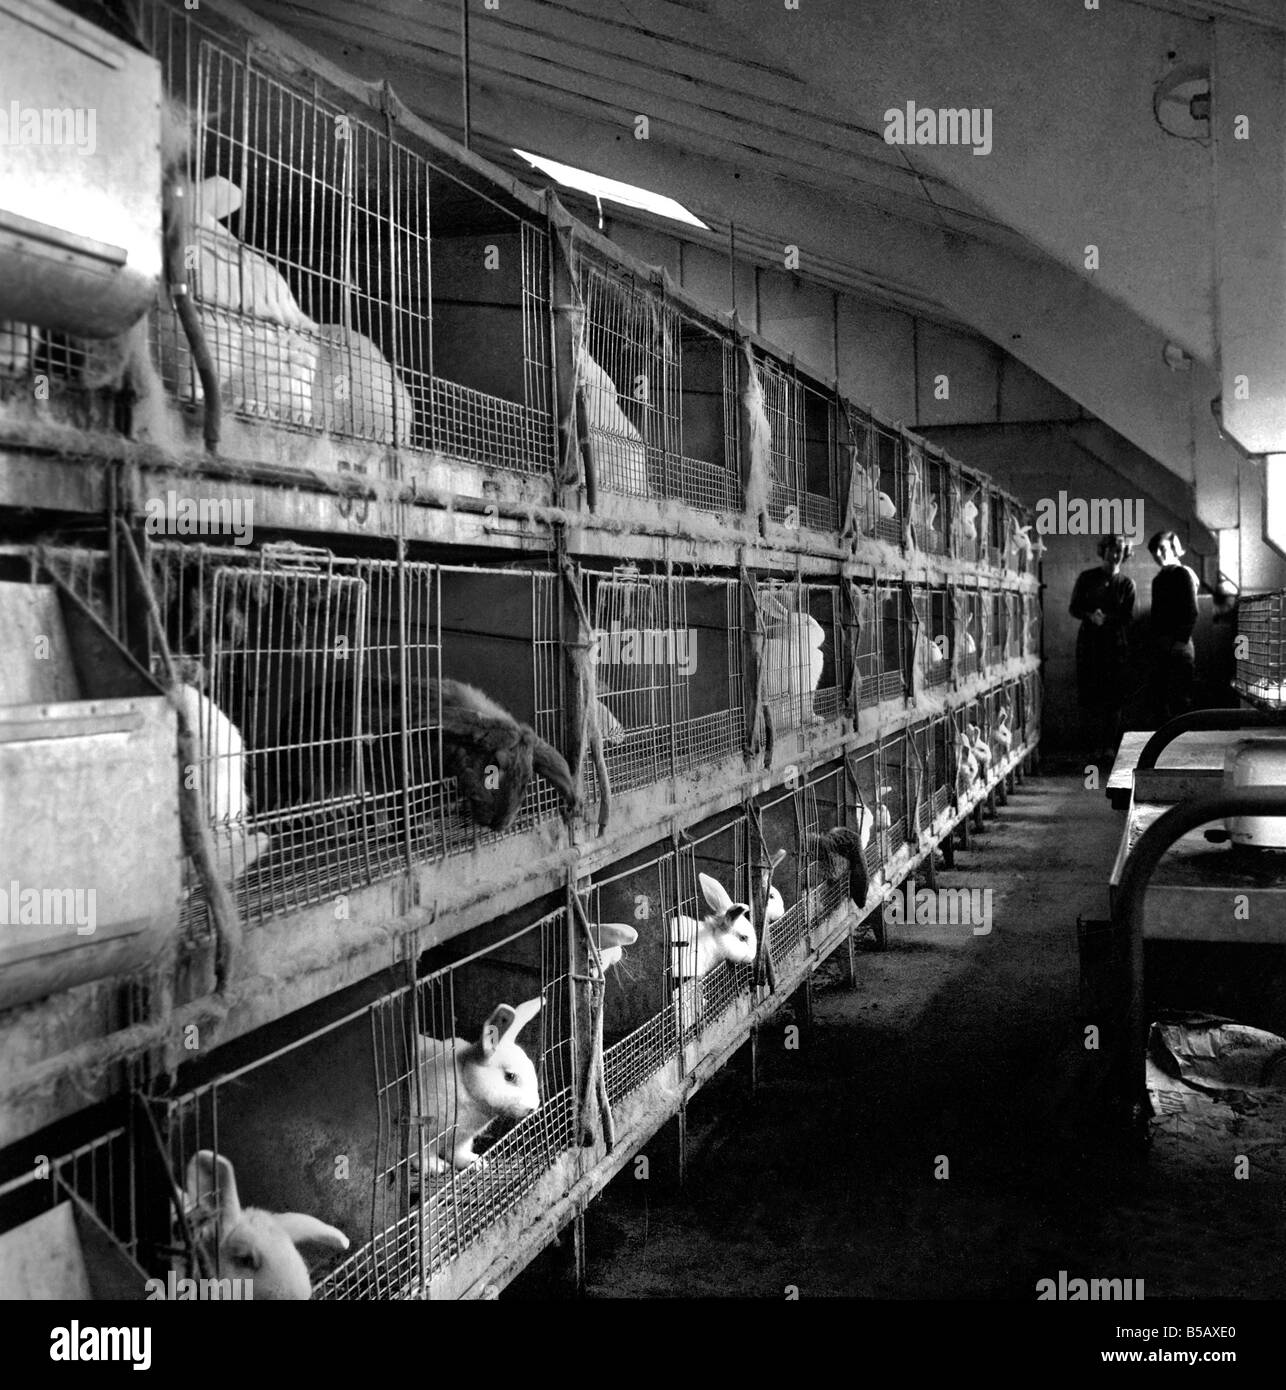 Rabbits bred in cage at a Rabbit farm. 1962 A871-006 - Stock Image